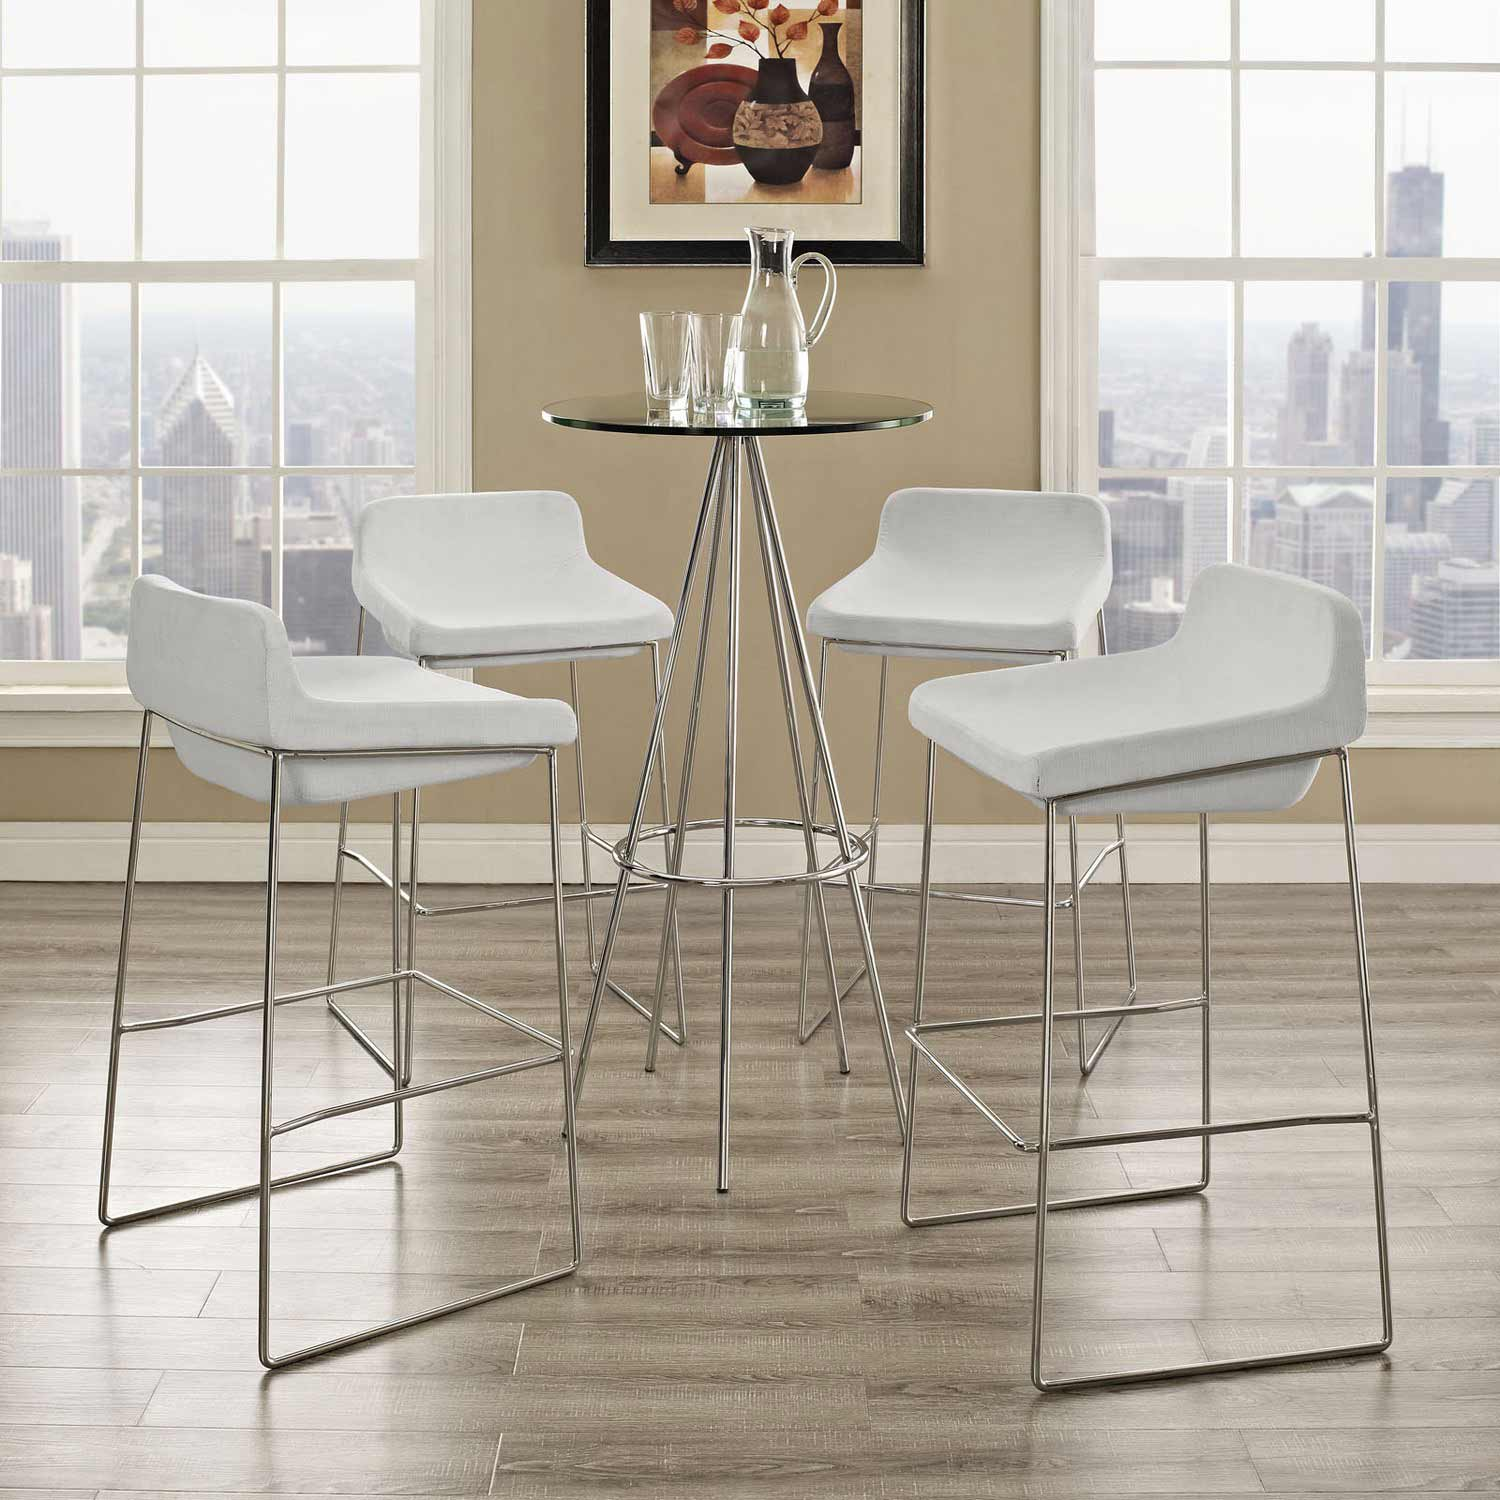 Modway Garner Bar Stool Set of 4 - White